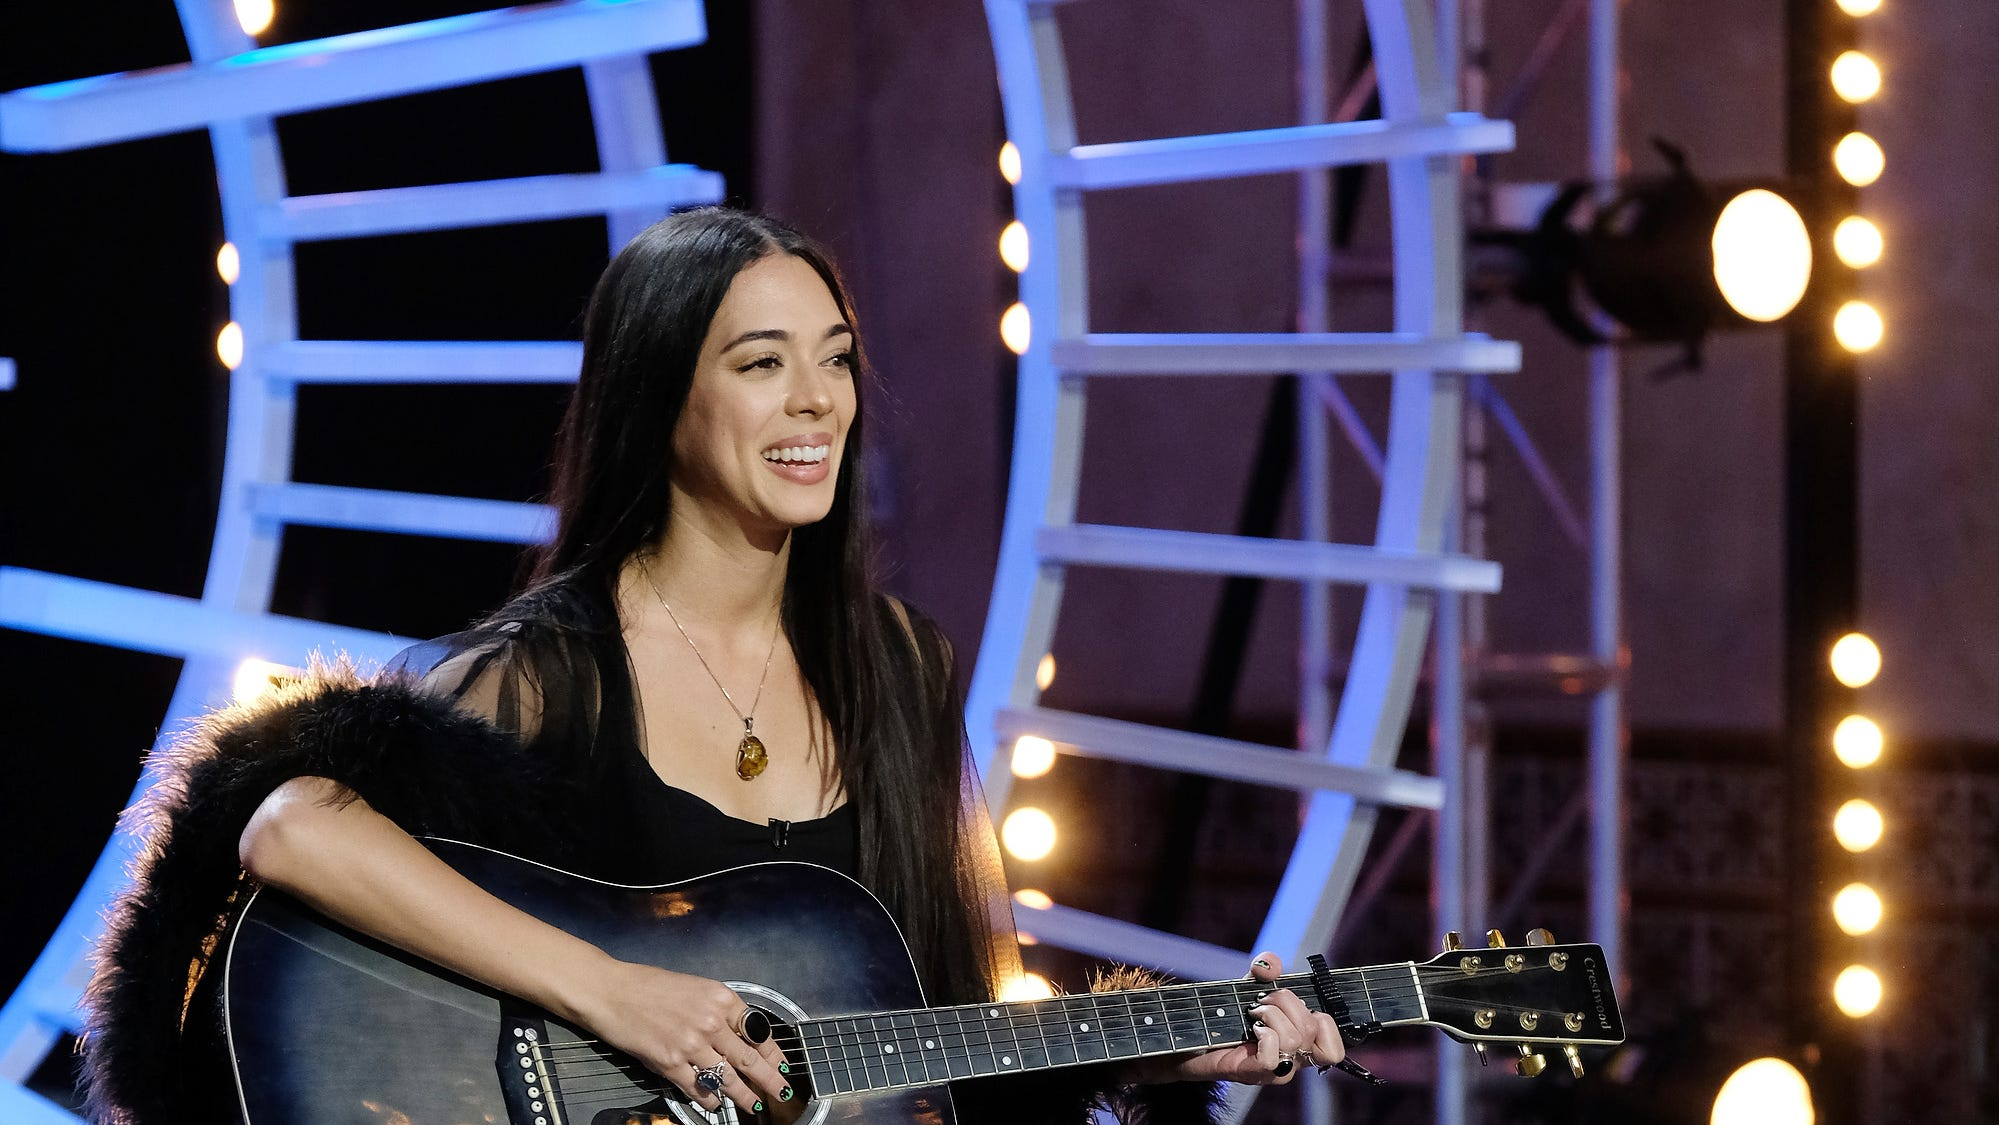 Erika Perrywasn't just tryingto prove to the judges she can sing— she was also tryingto prove something to her ex-boyfriend, who recently dumped her.